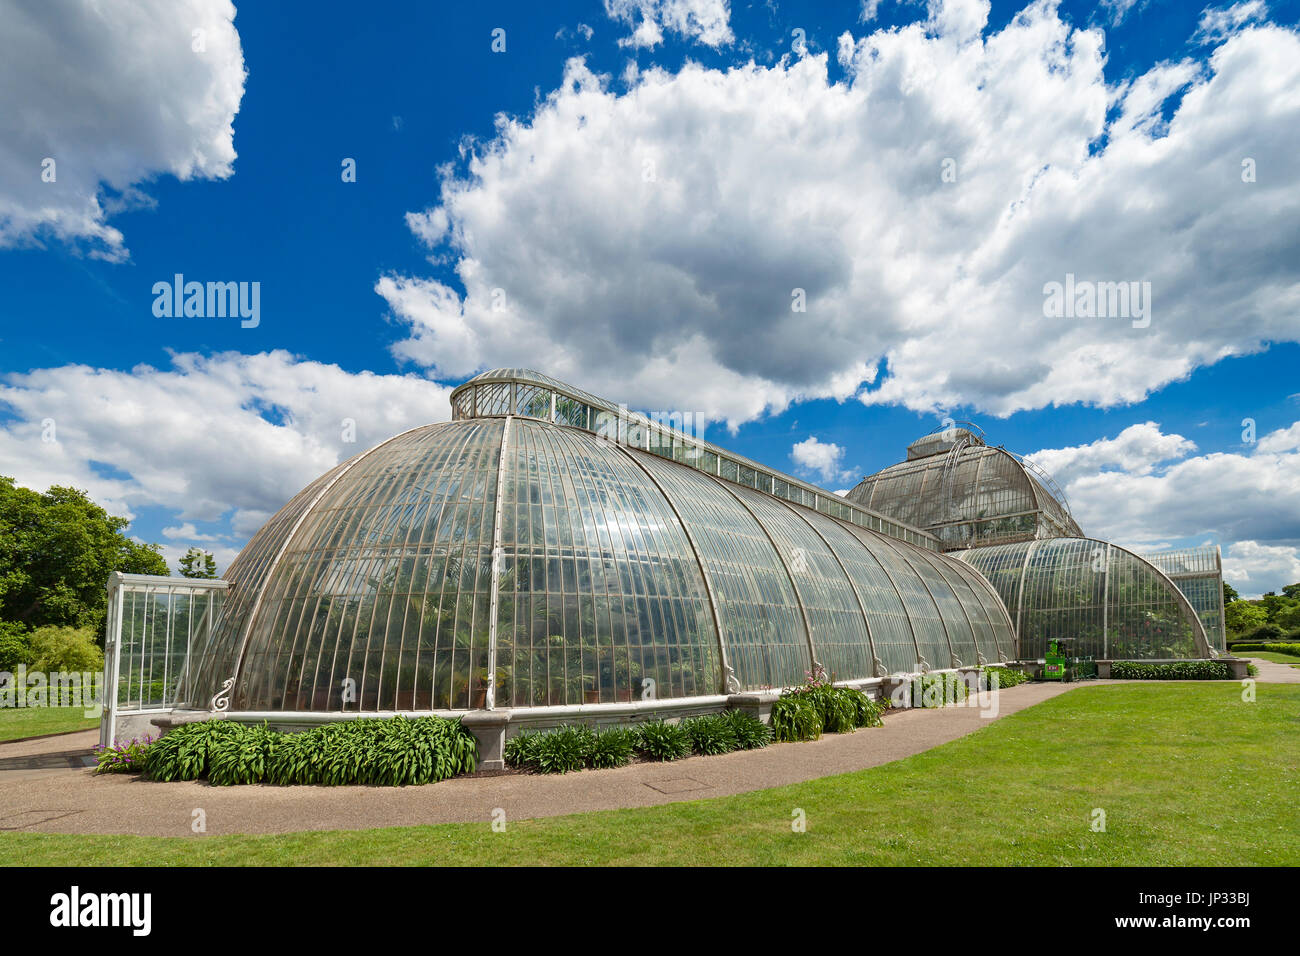 The Palm House Kew Gardens. - Stock Image